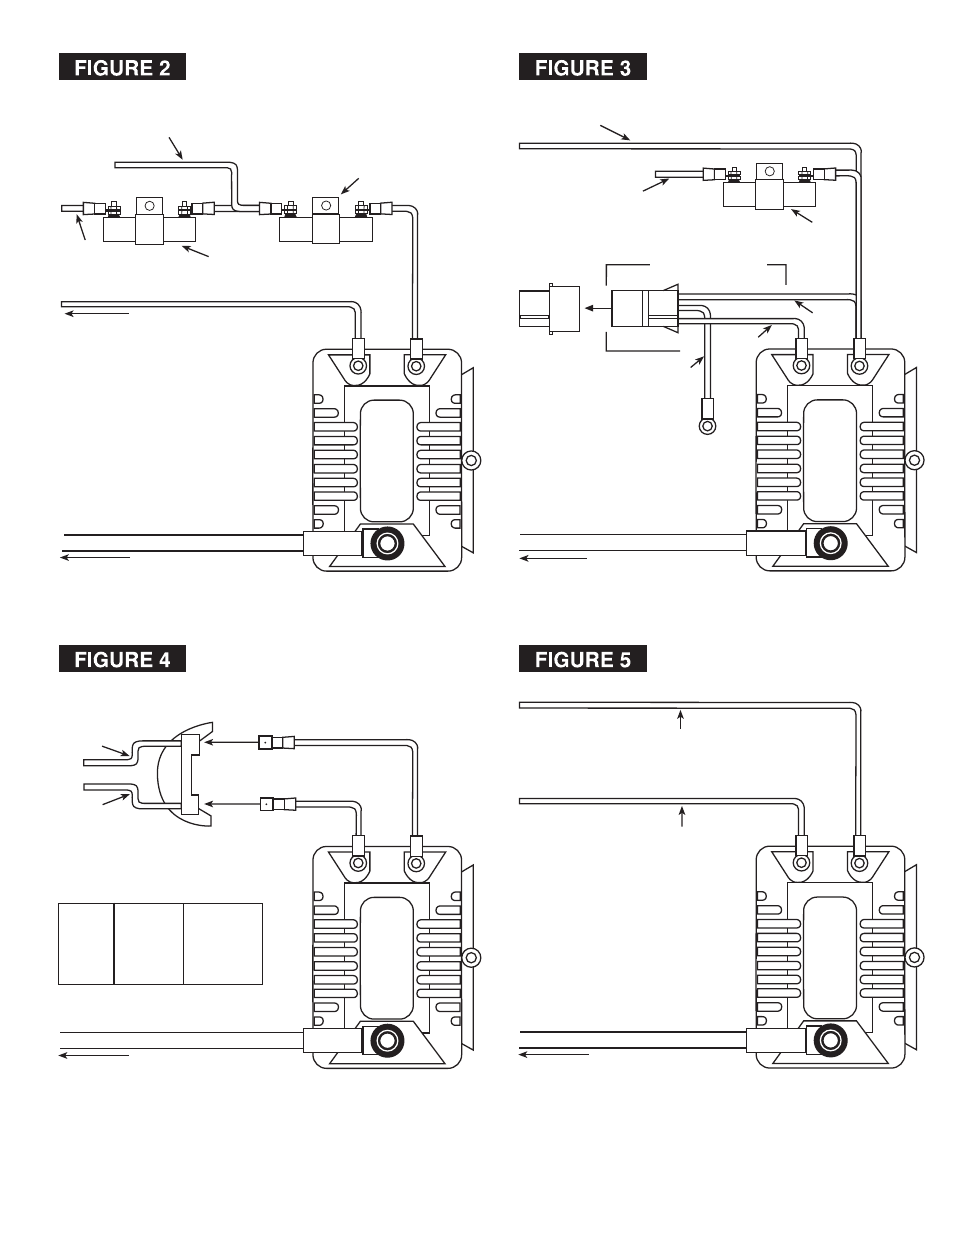 Mallory Voltmaster Wiring Diagram | Wiring Diagram on msd 6al diagram, mallory dist wiring-diagram, electronic ignition diagram, omc ignition switch diagram, mallory high fire wiring-diagram, atwood rv water heater diagram, inboard outboard motor diagram, basic car electrical system diagram, mallory carburetor diagram, fairbanks morse magneto diagram,